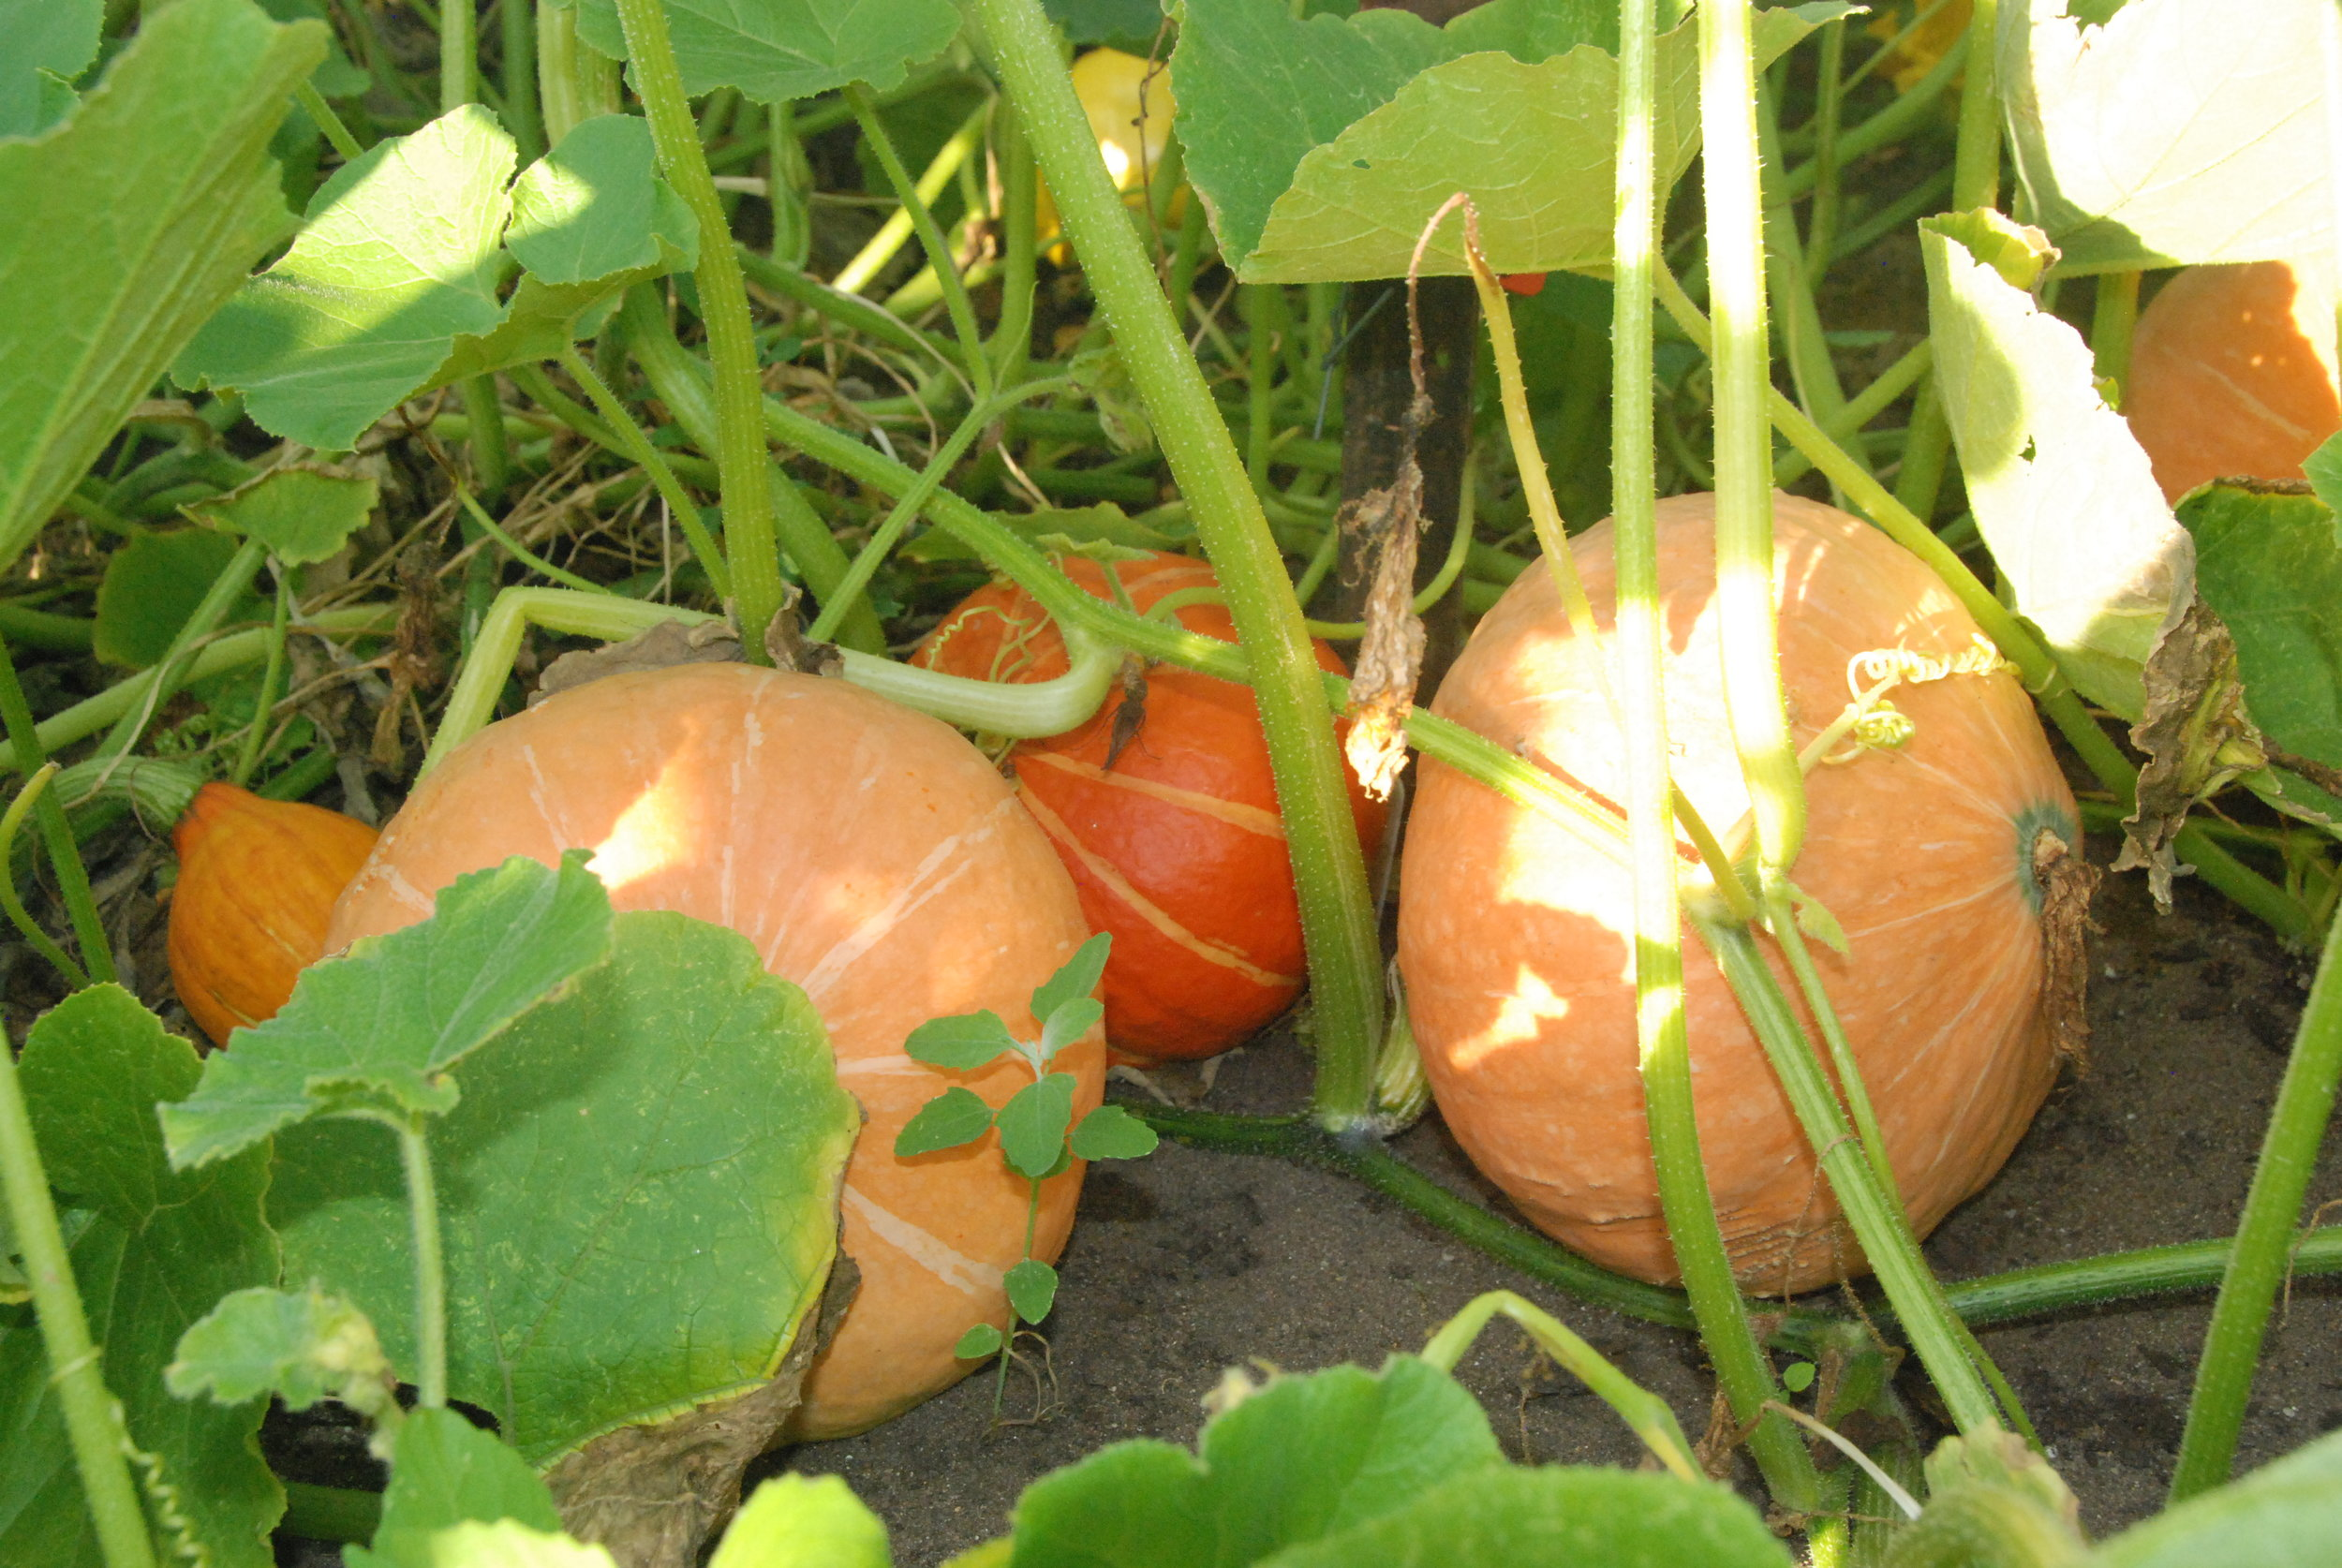 Harvesting these  'Potimarron' or 'Red Kuri'  pumpkins this week